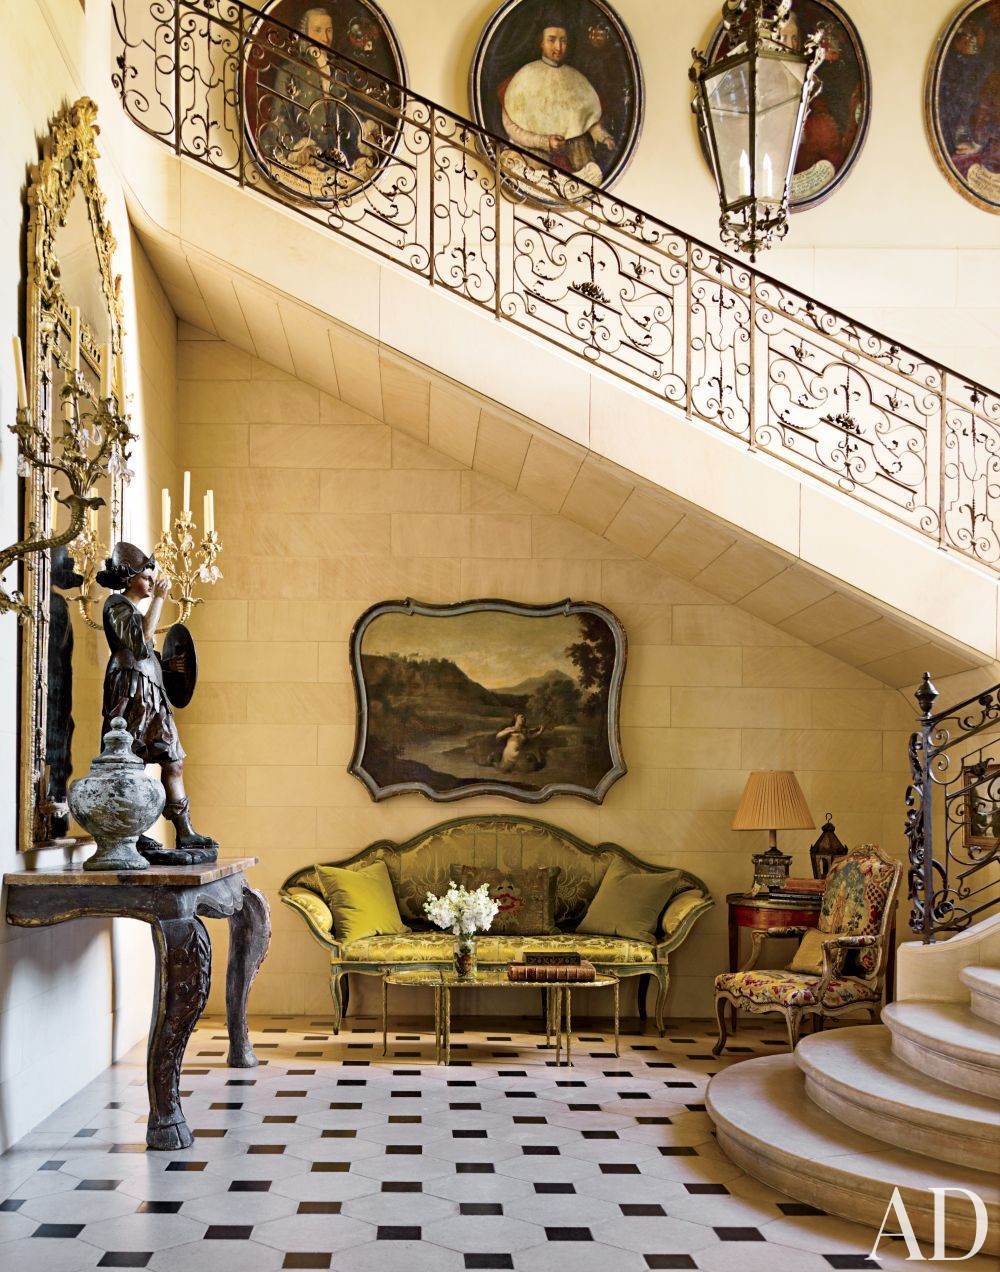 Traditional Entrance Hall by Kara Childress Inc. and Newberry Campa Architects in Houston, Texas